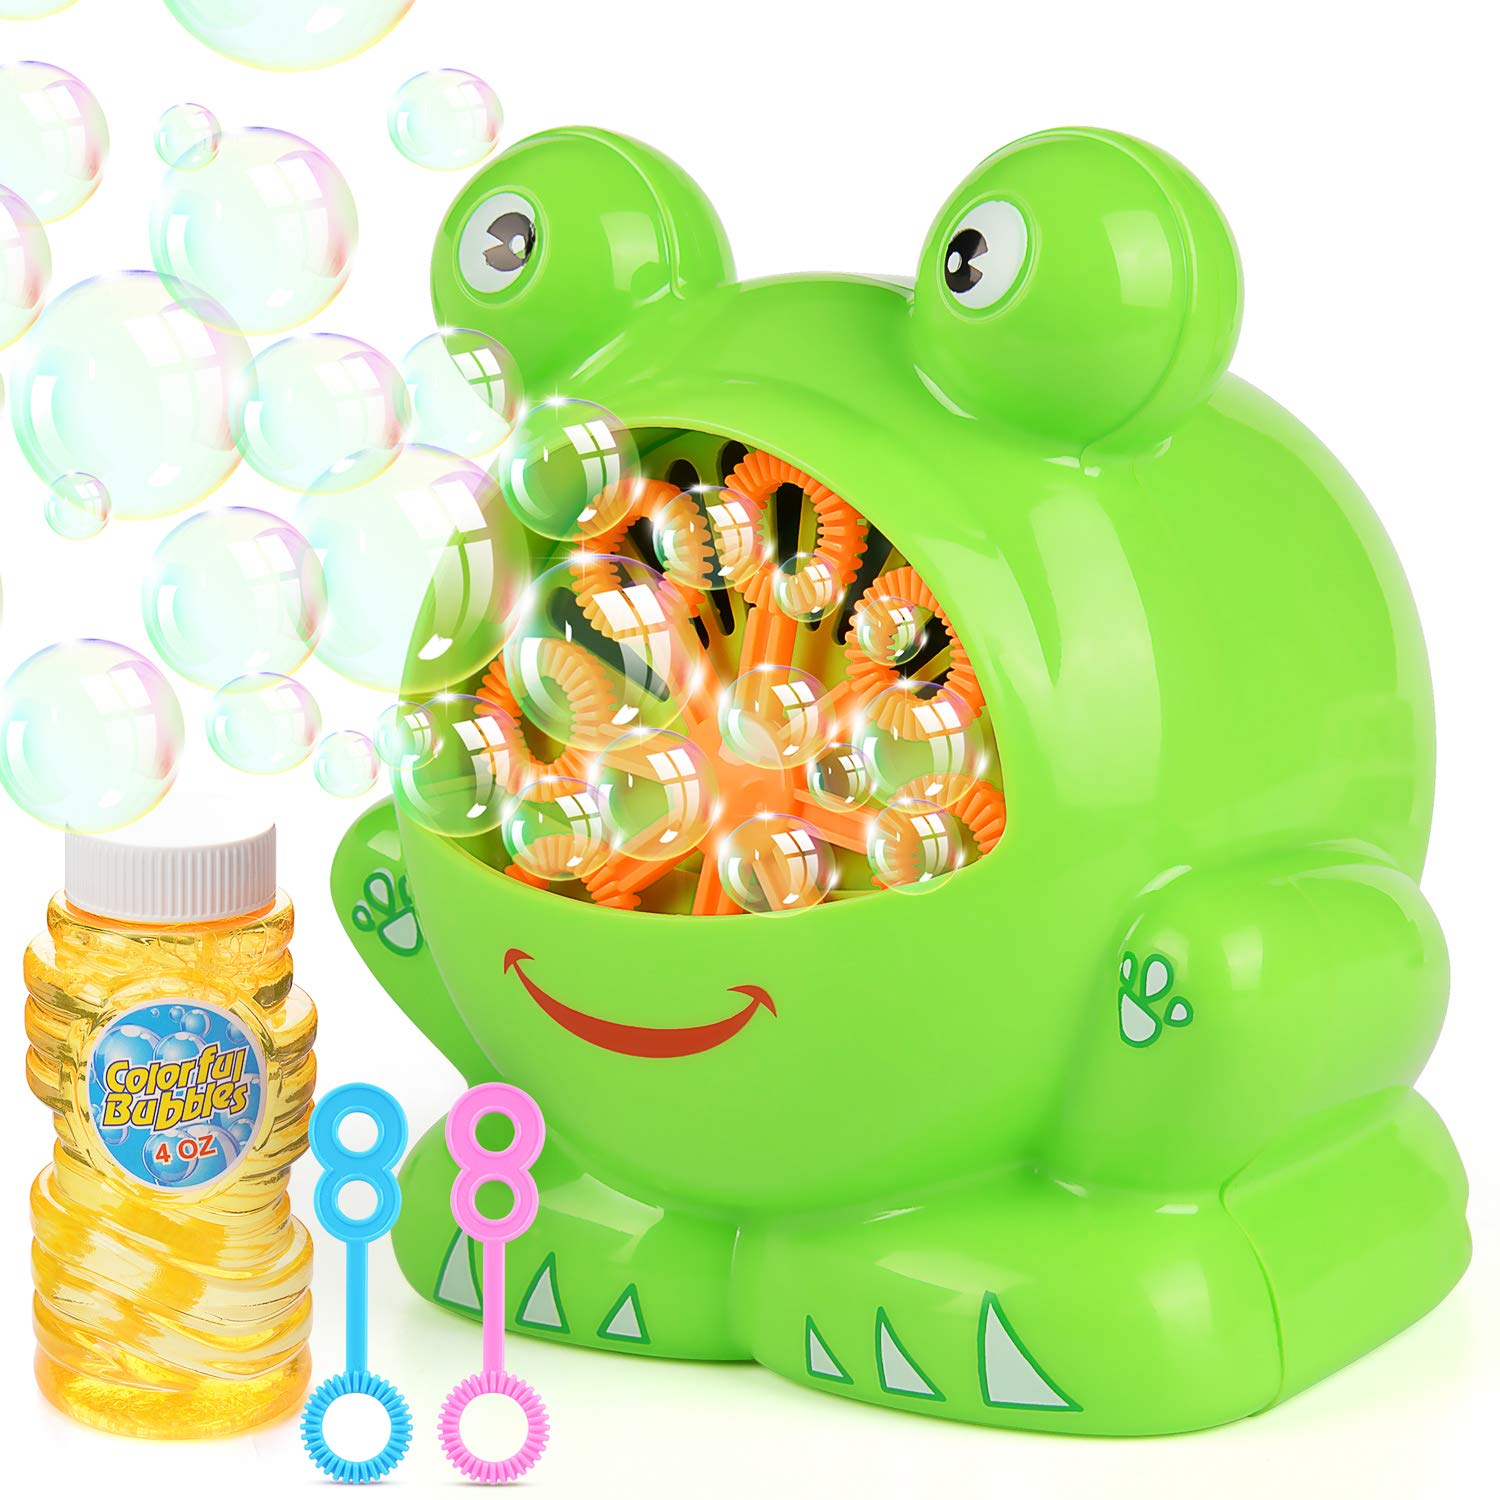 Elover Bubble Machine with Bubble Solution Automatic Bubble Machine for Kids with High Output Over 500 Bubbles Per Minute for Park Christmas Party Wedding Battery Operated Not Include